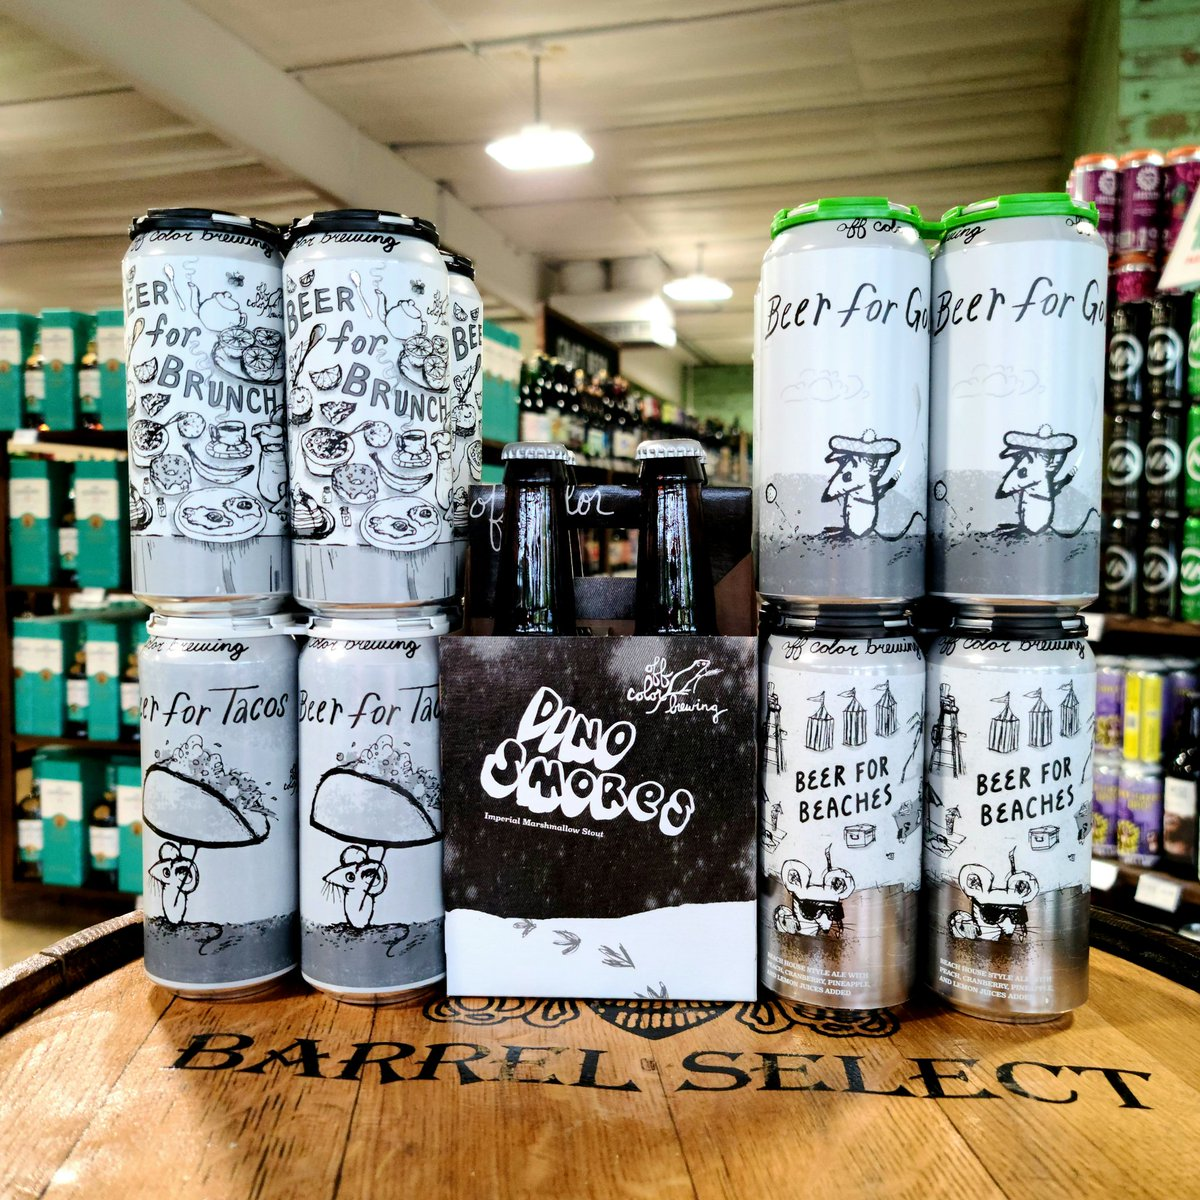 We are thrilled to have @OffcolorBrewing out of Chicago back on our shelves!  #ILbeer #beerforbrunch #berlinerweisse #beerfortacos #gose #dinesmores #russianimperialstout #beerforgolf #witbeer #beerforbeaches https://t.co/UPW7CEjZb4